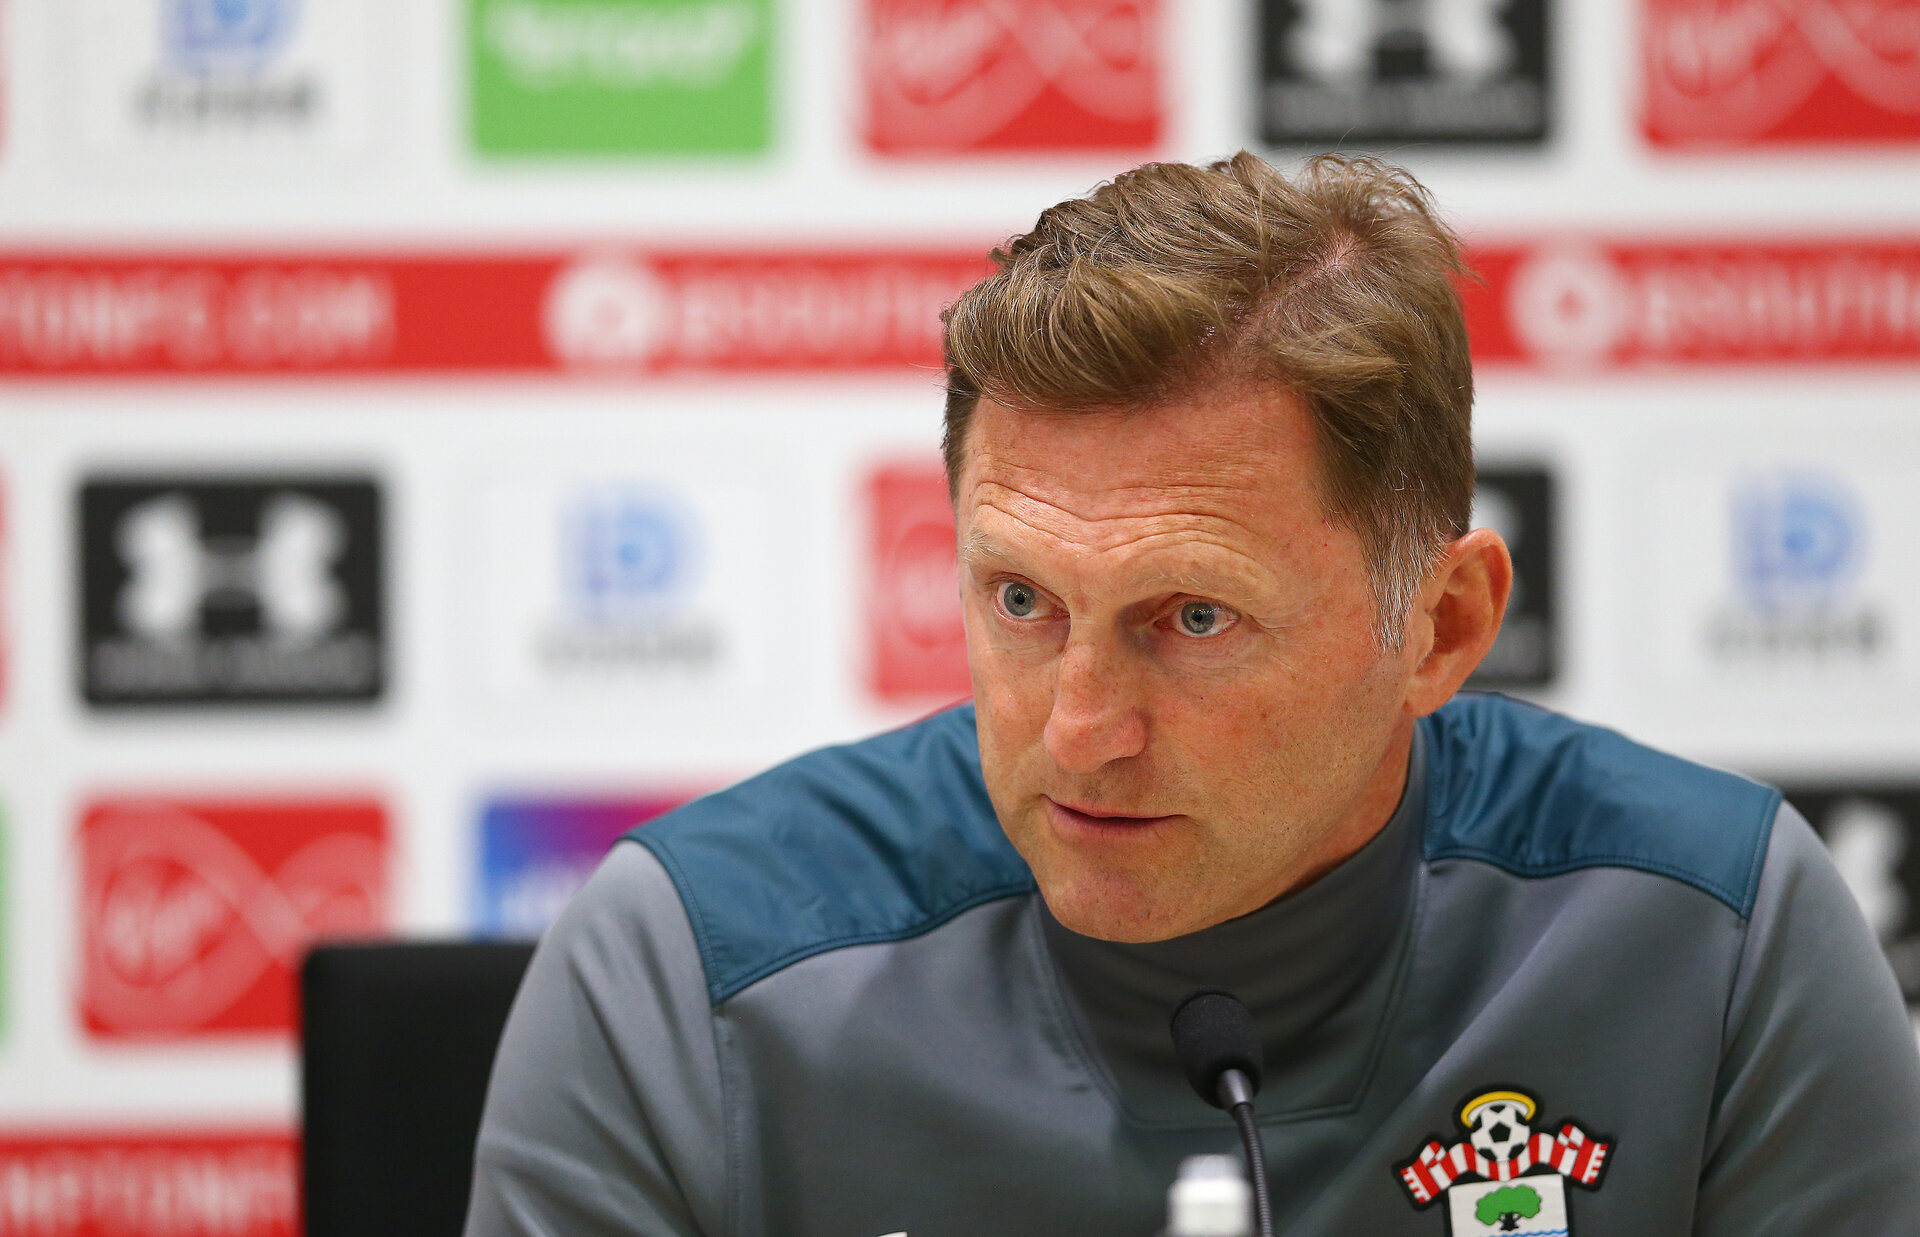 SOUTHAMPTON, ENGLAND - AUGUST 15: Manager Ralph Hasenhuttl duPring a Southampton FC press conference at the Staplewood Campus on August 15, 2019 in Southampton, England. (Photo by Matt Watson/Southampton FC via Getty Images)